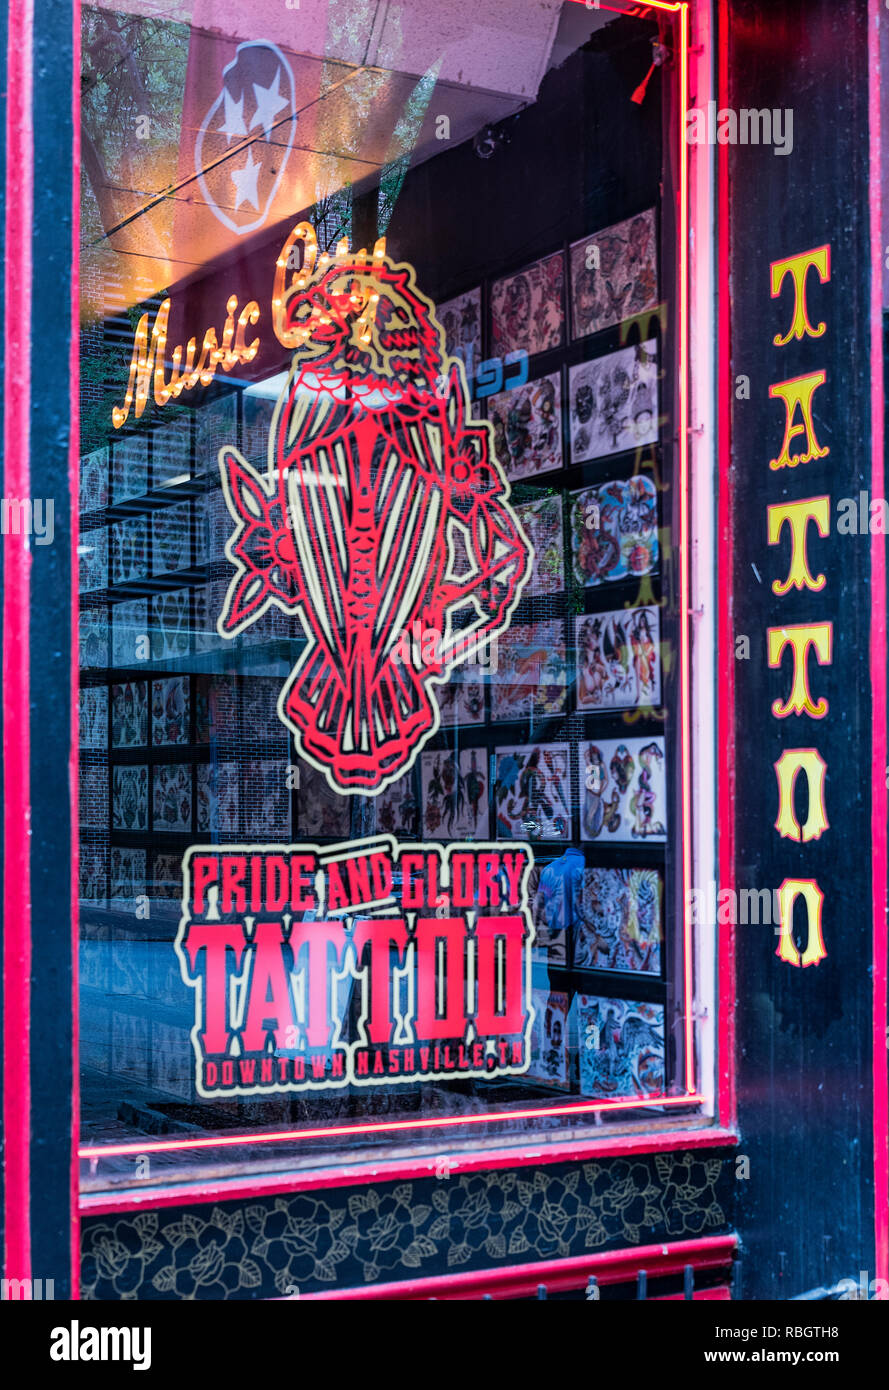 Tattoo Store Stock Photos & Tattoo Store Stock Images - Alamy